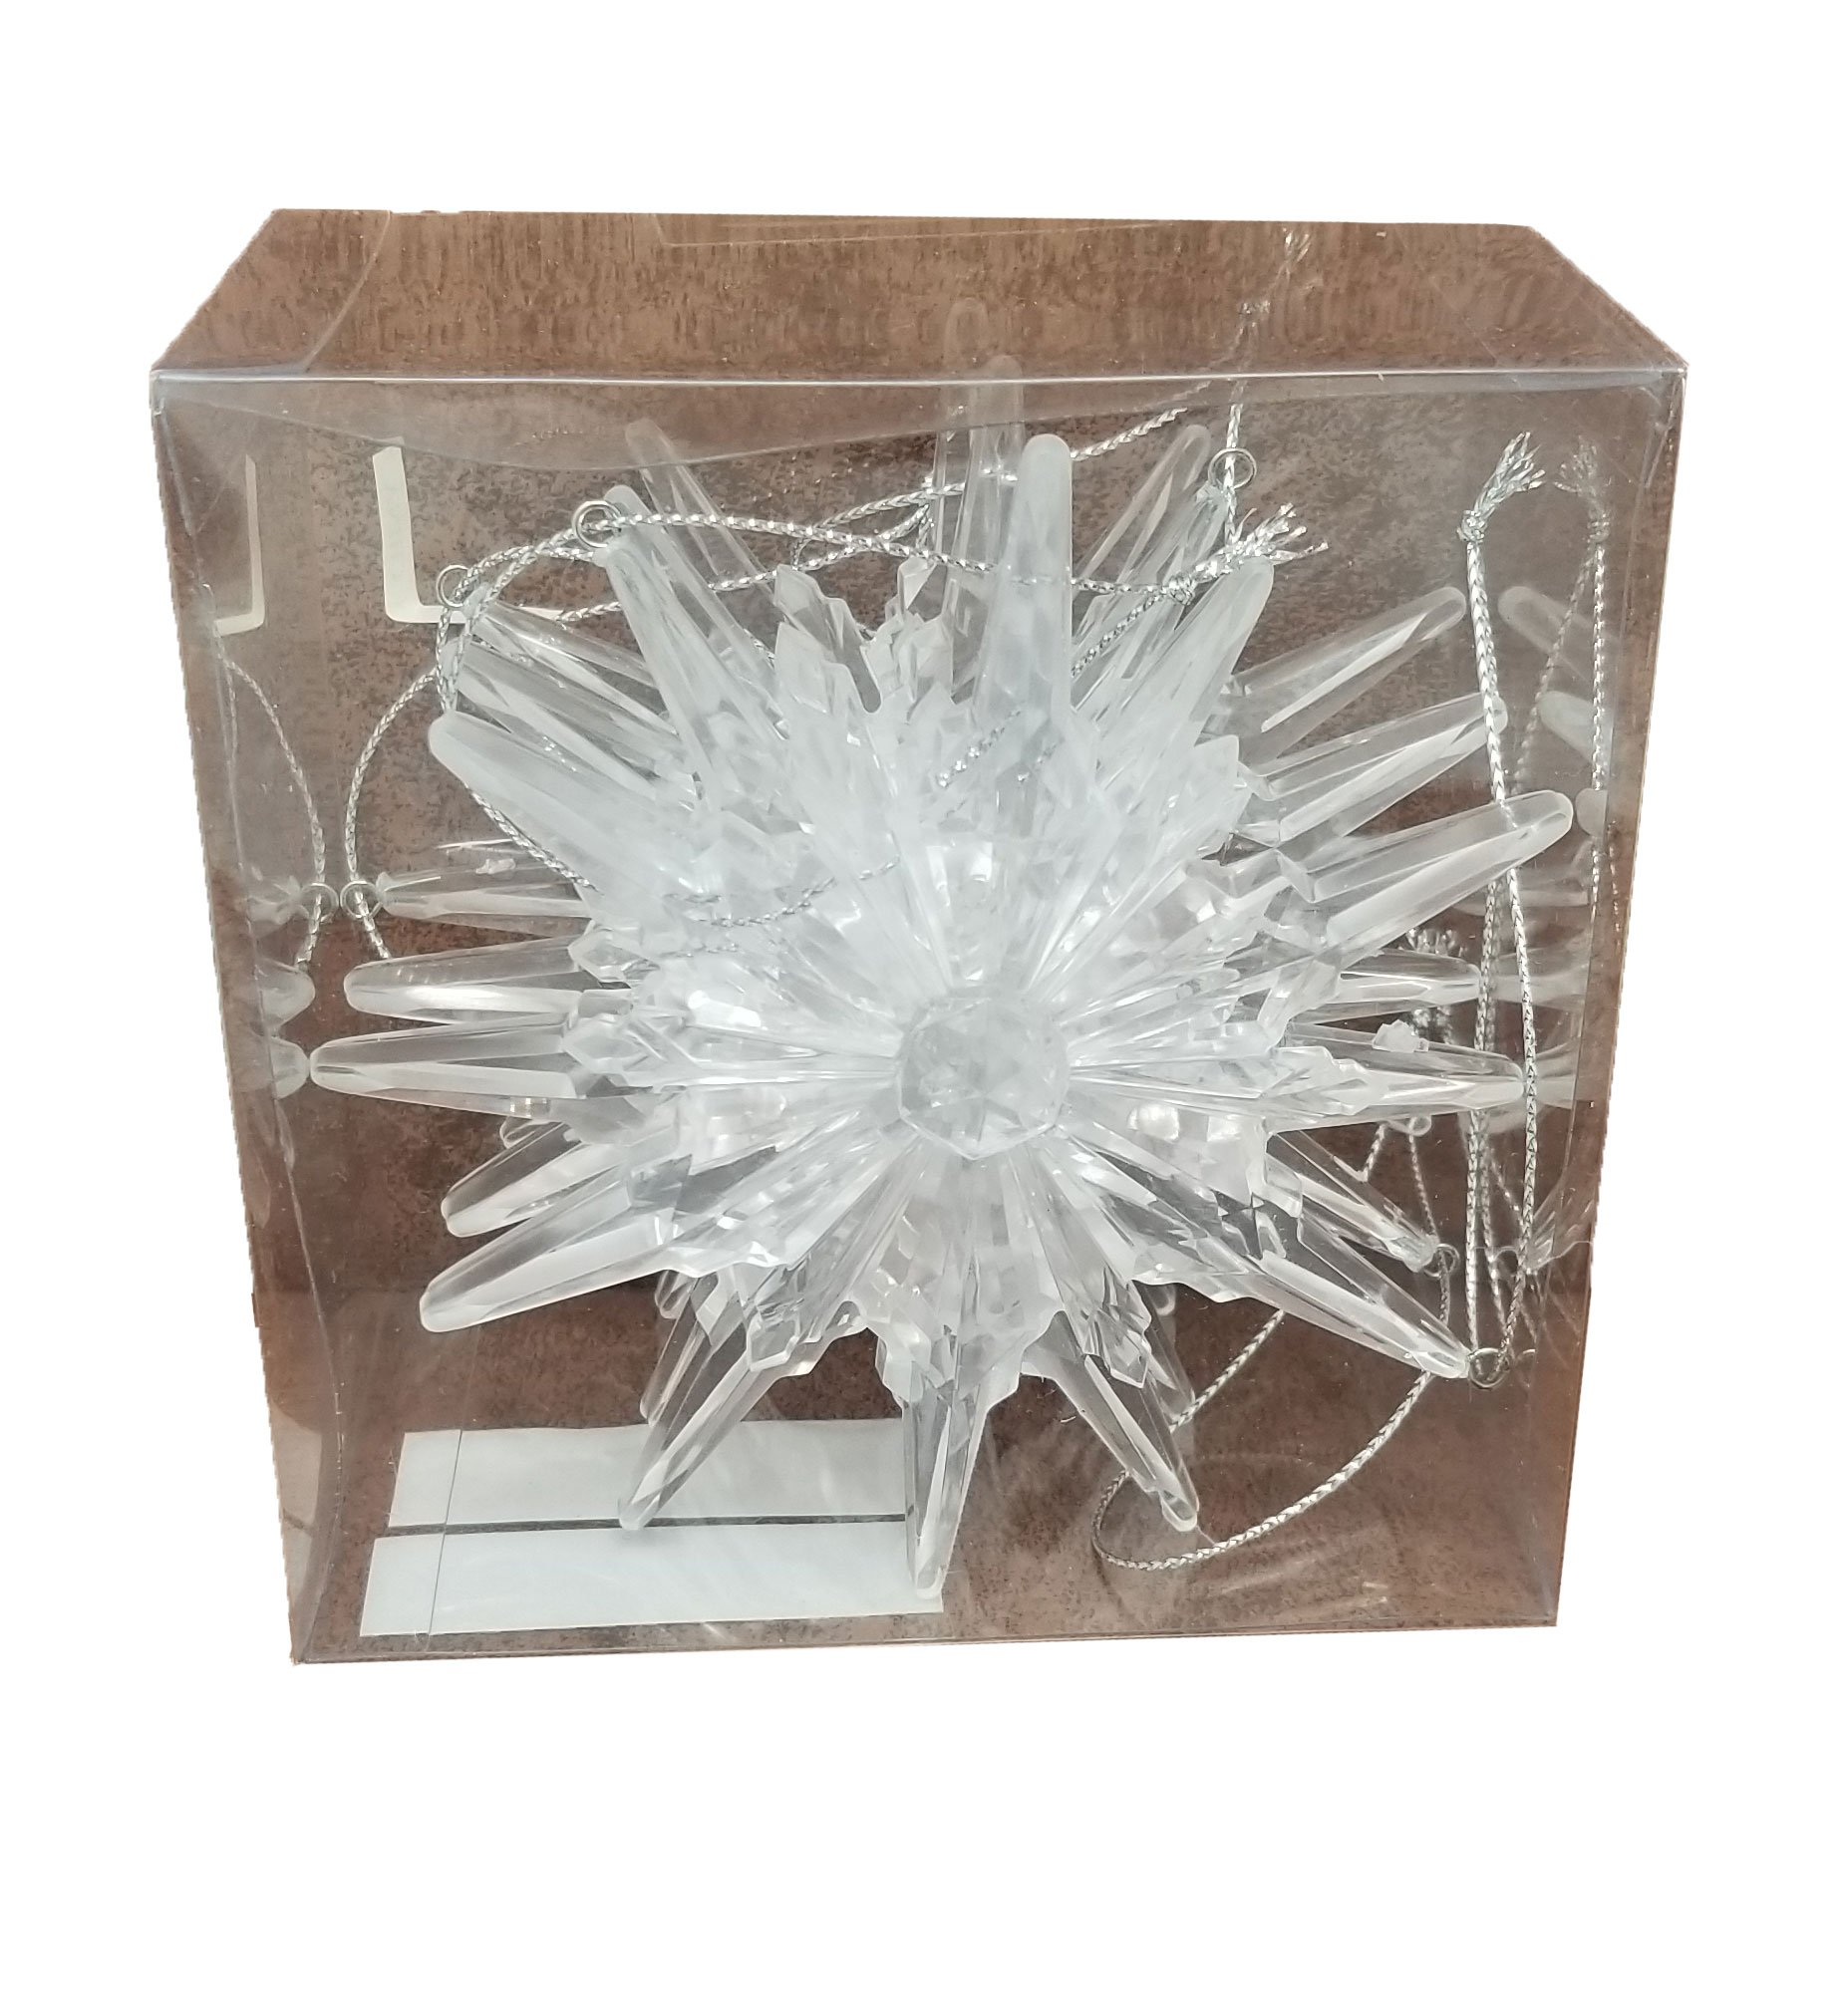 Findlavender Snow Flake Acrylic Ornaments - Perfect to decorate your tree - 6 snowflakes per set